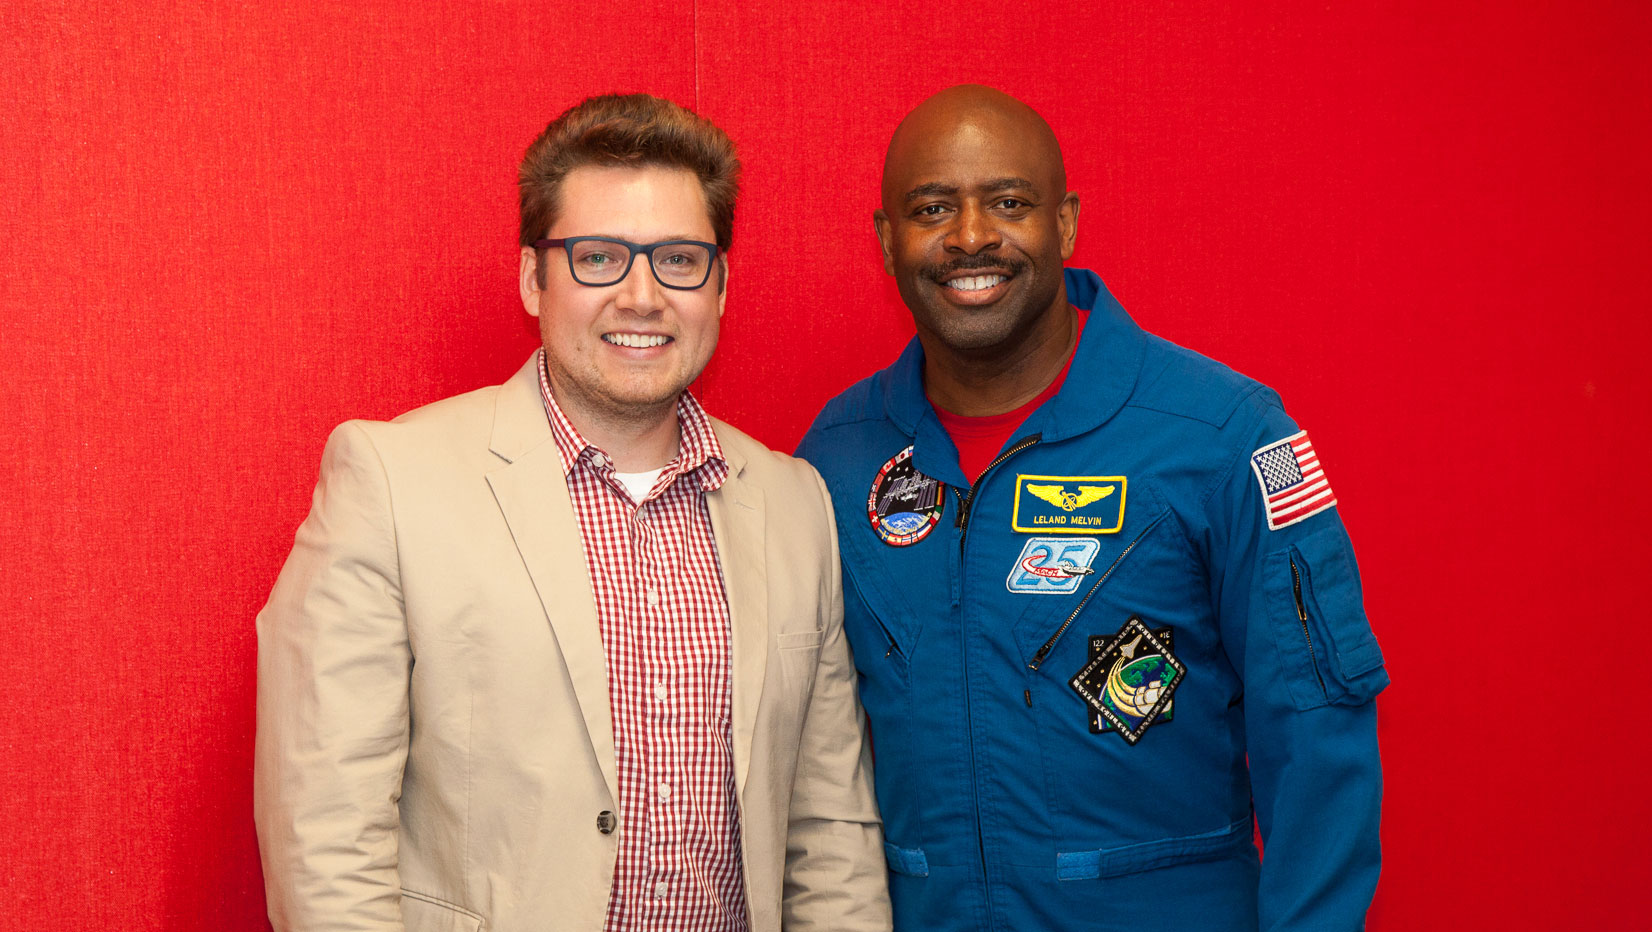 two men stand in front of a red background, one (Leland Melvin) is wearing an astronaut uniform